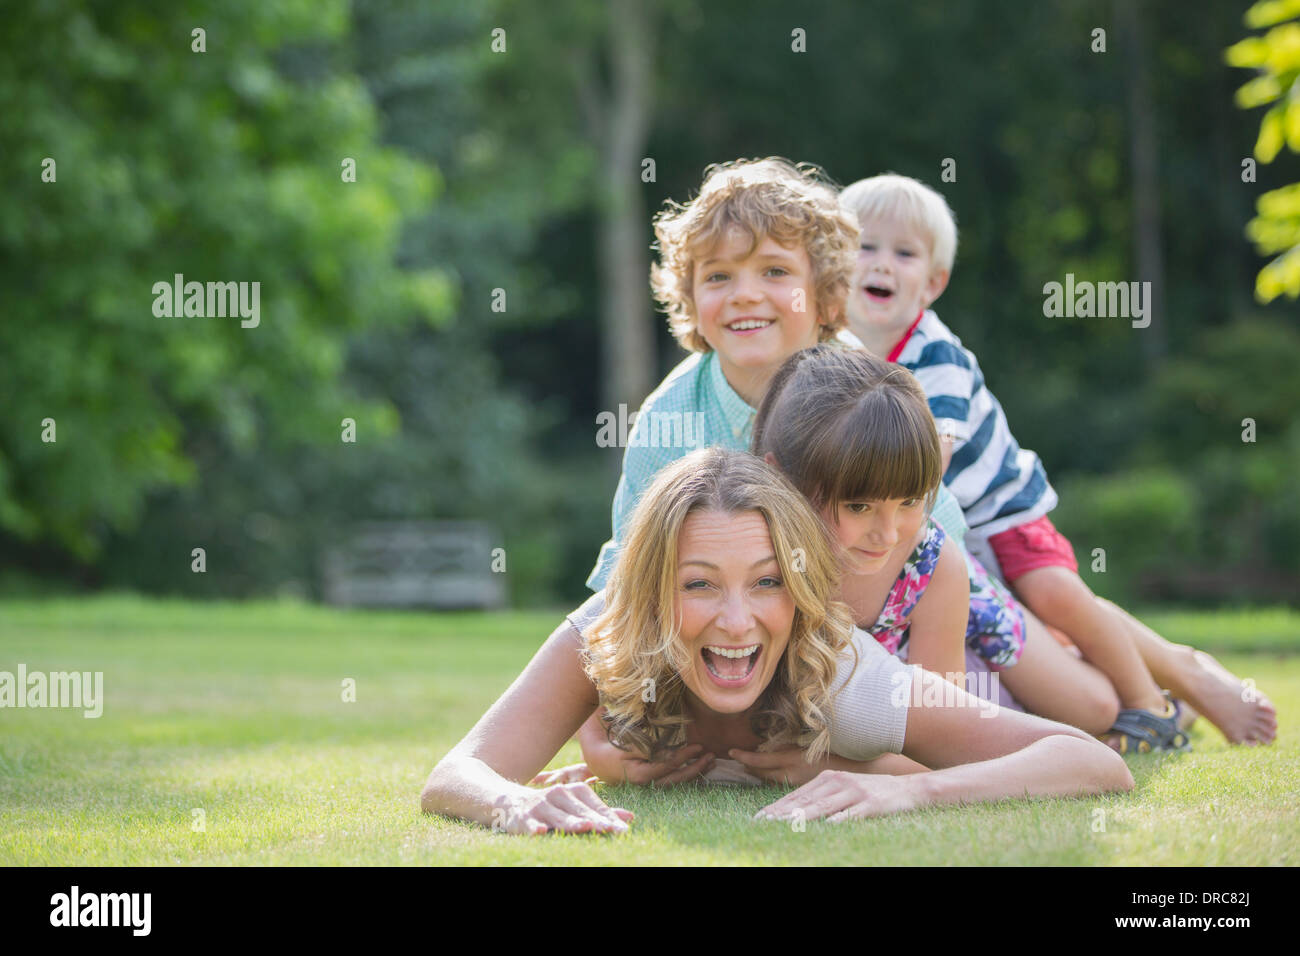 Children laying on mother in grass - Stock Image